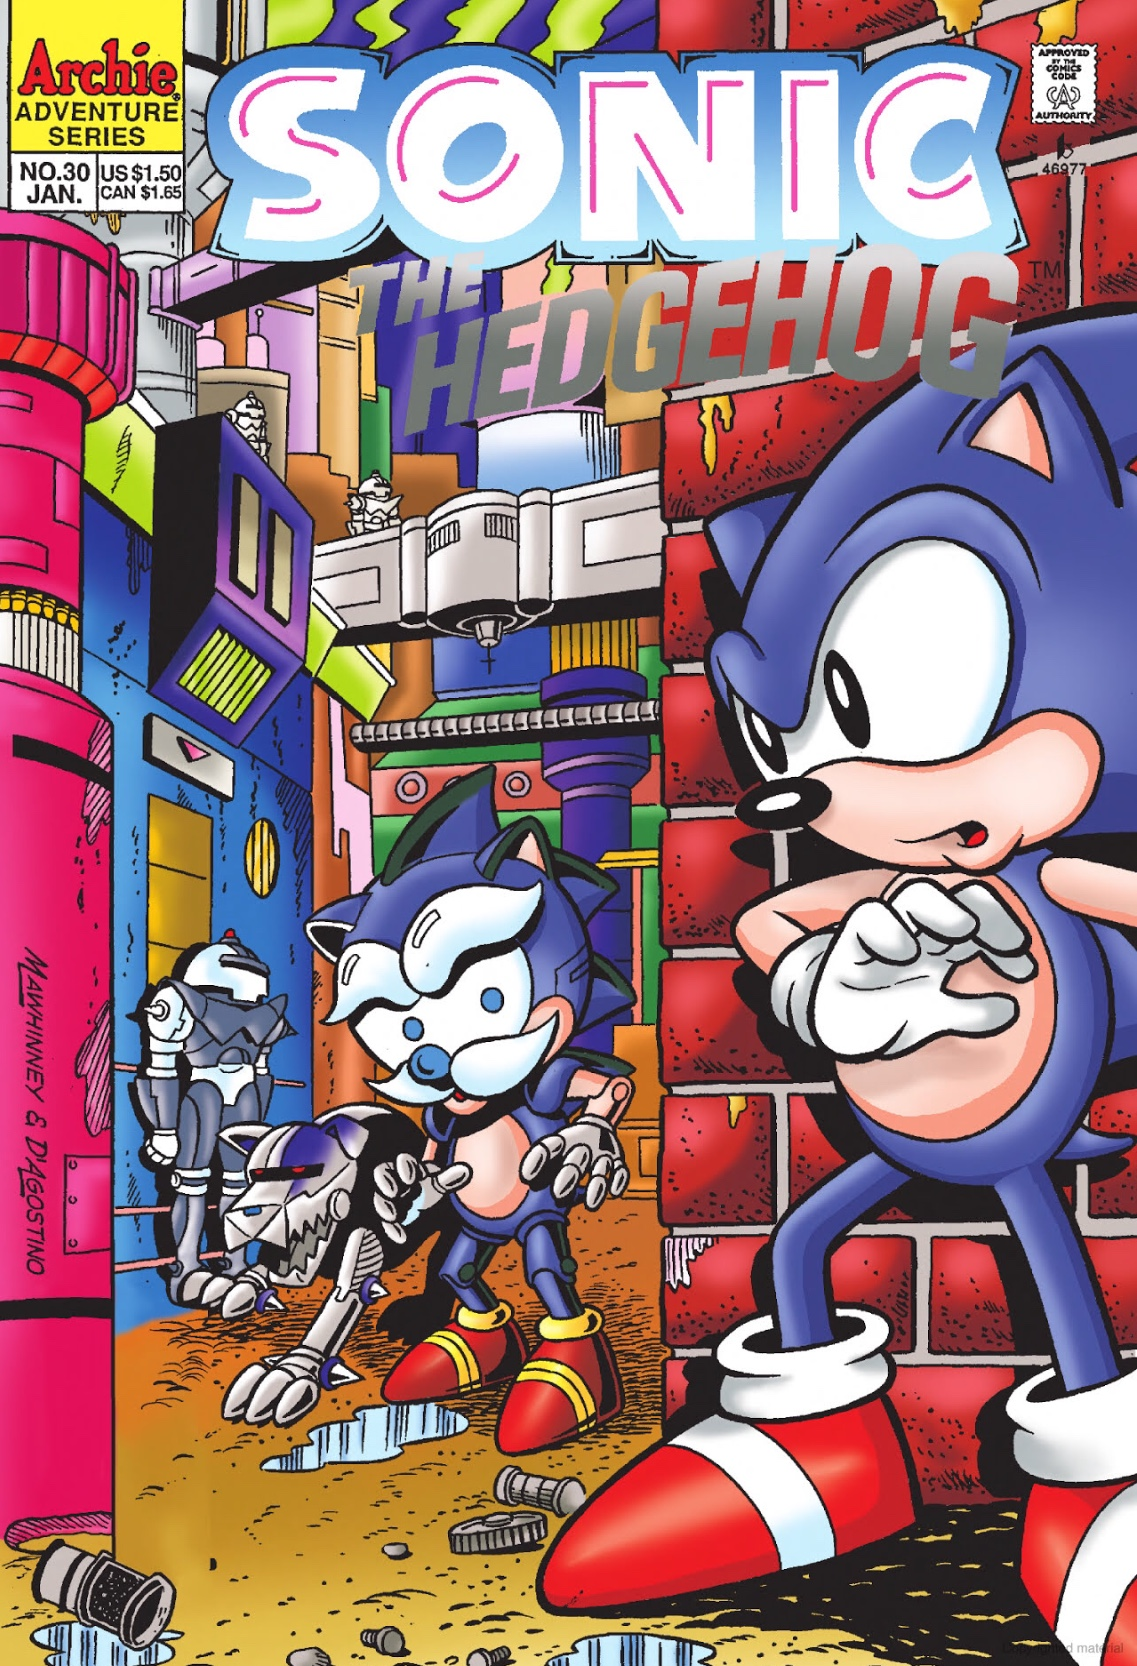 Archie Sonic The Hedgehog Issue 30 Sonic News Network Fandom